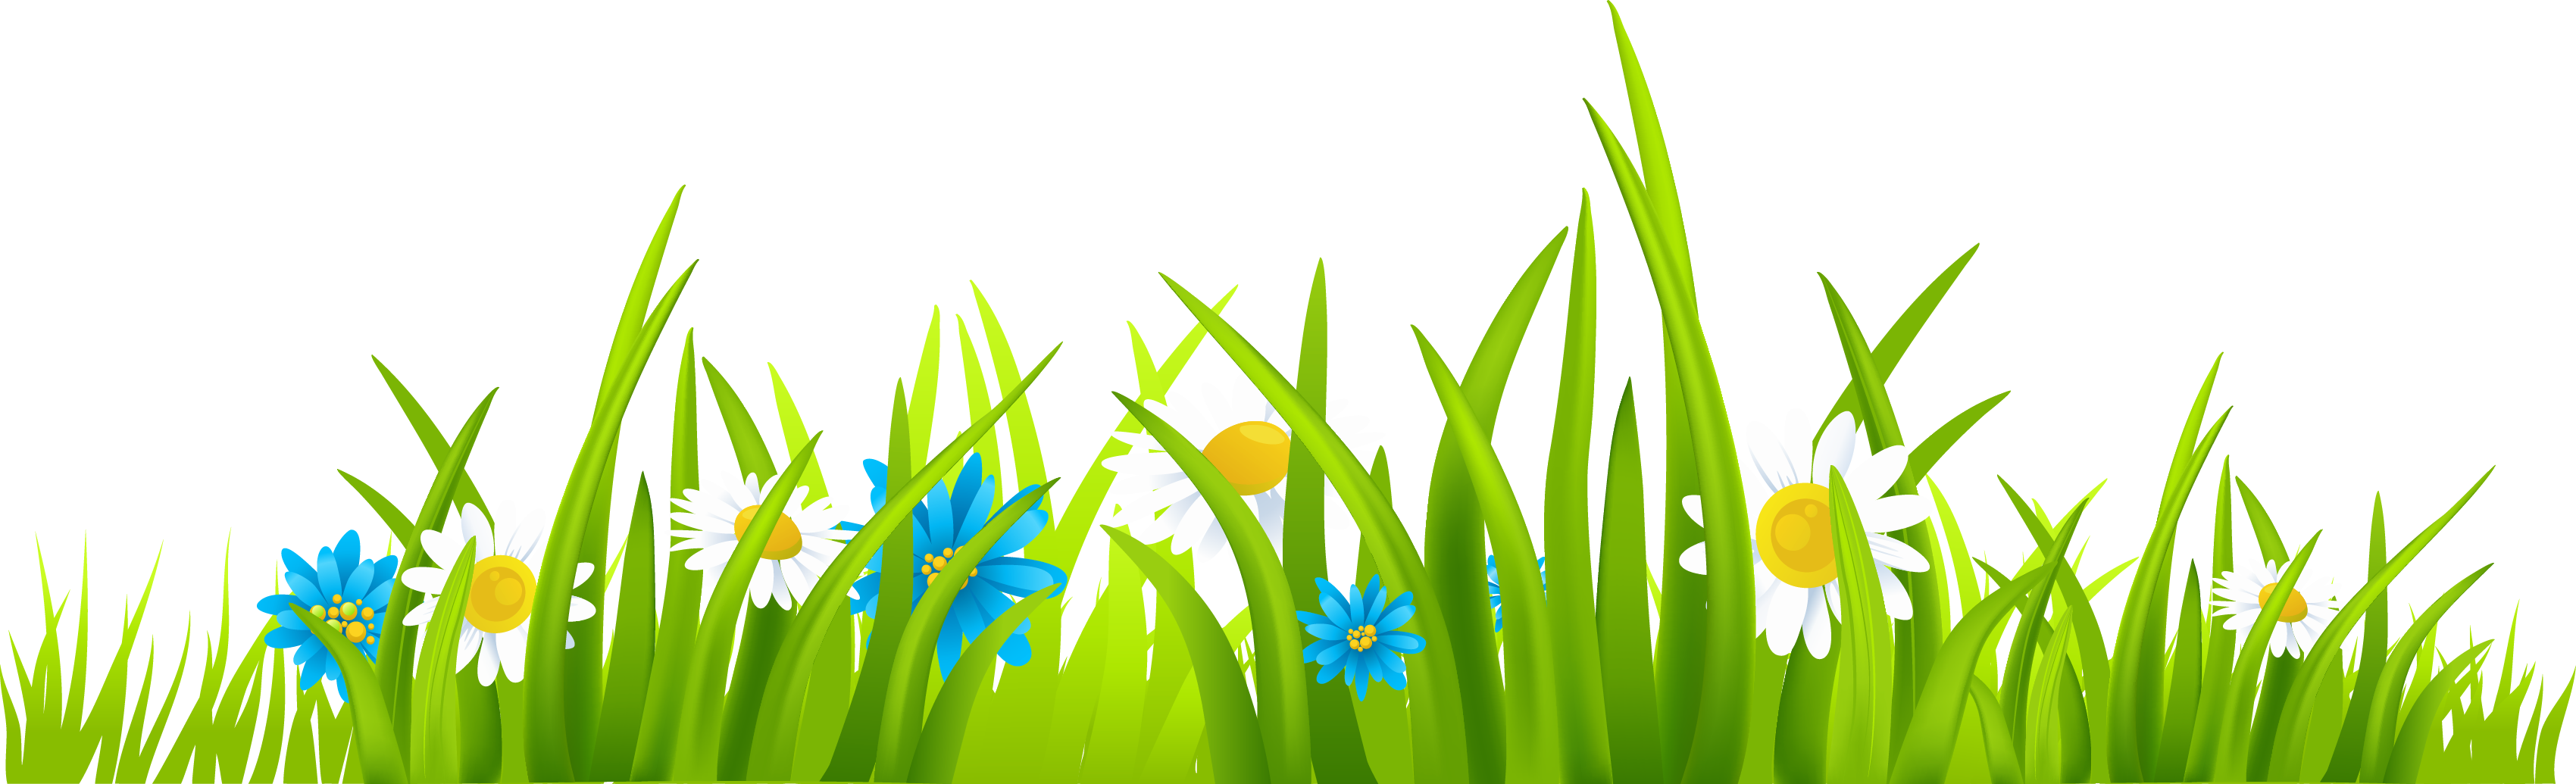 Field clipart plant field. Grass ground with flowers